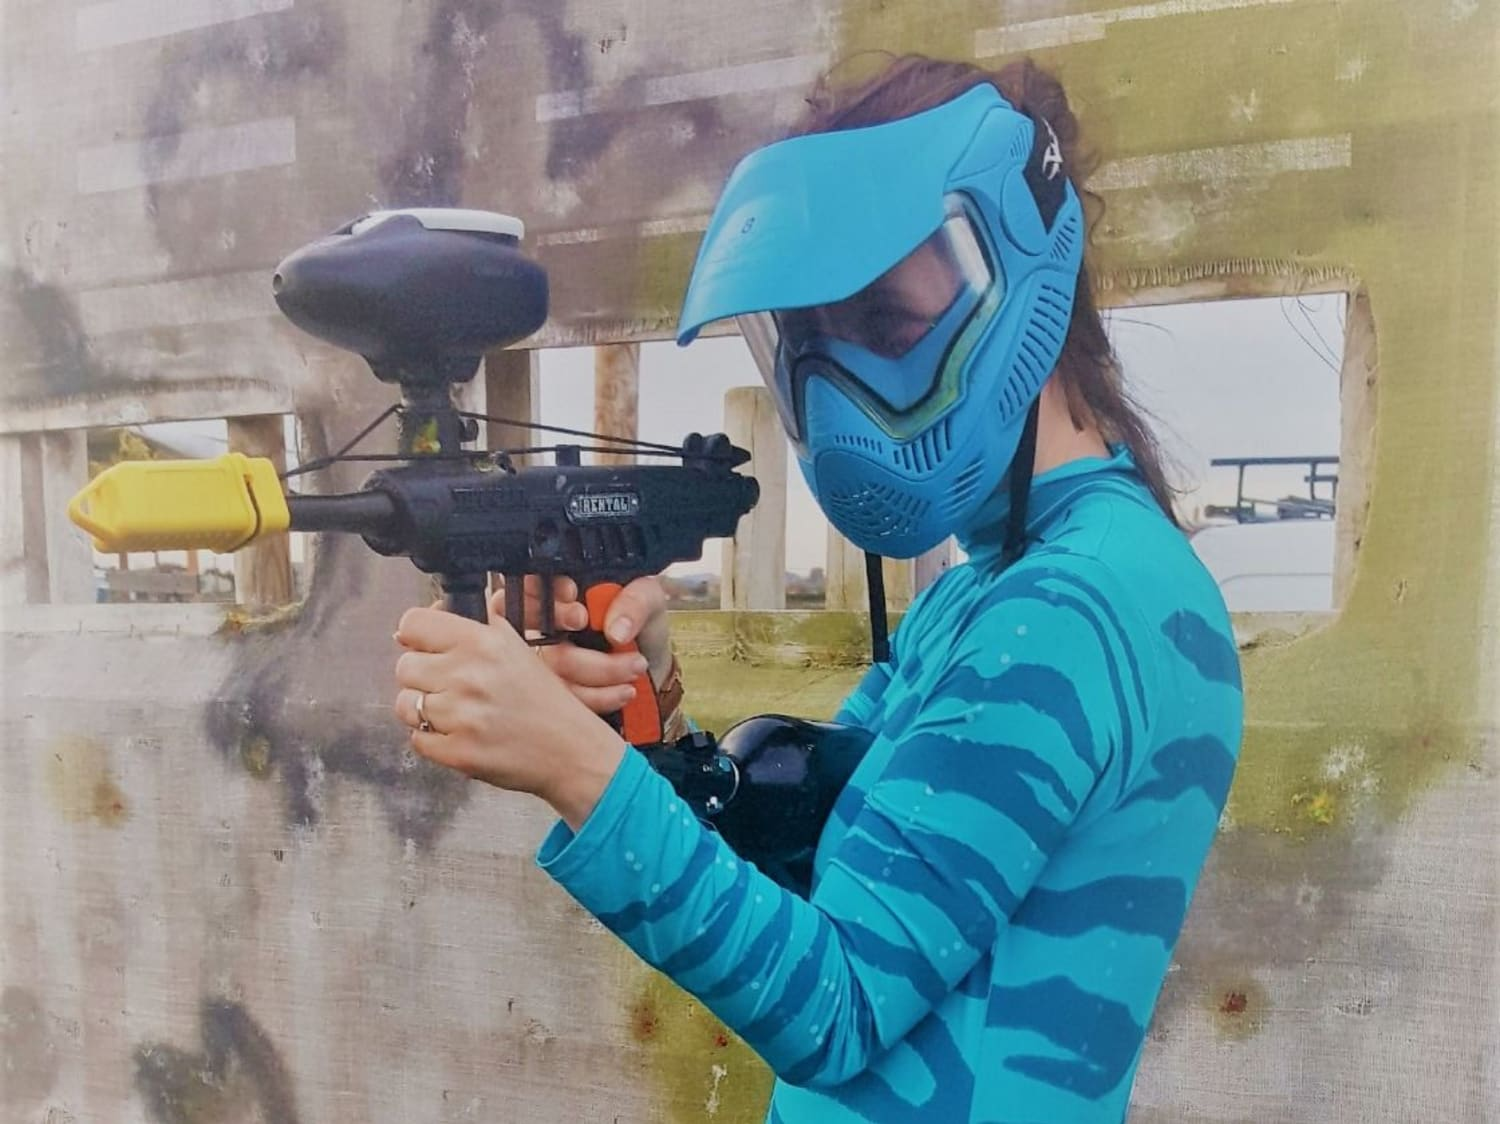 Paintball And Games (Alixan) - Alixan